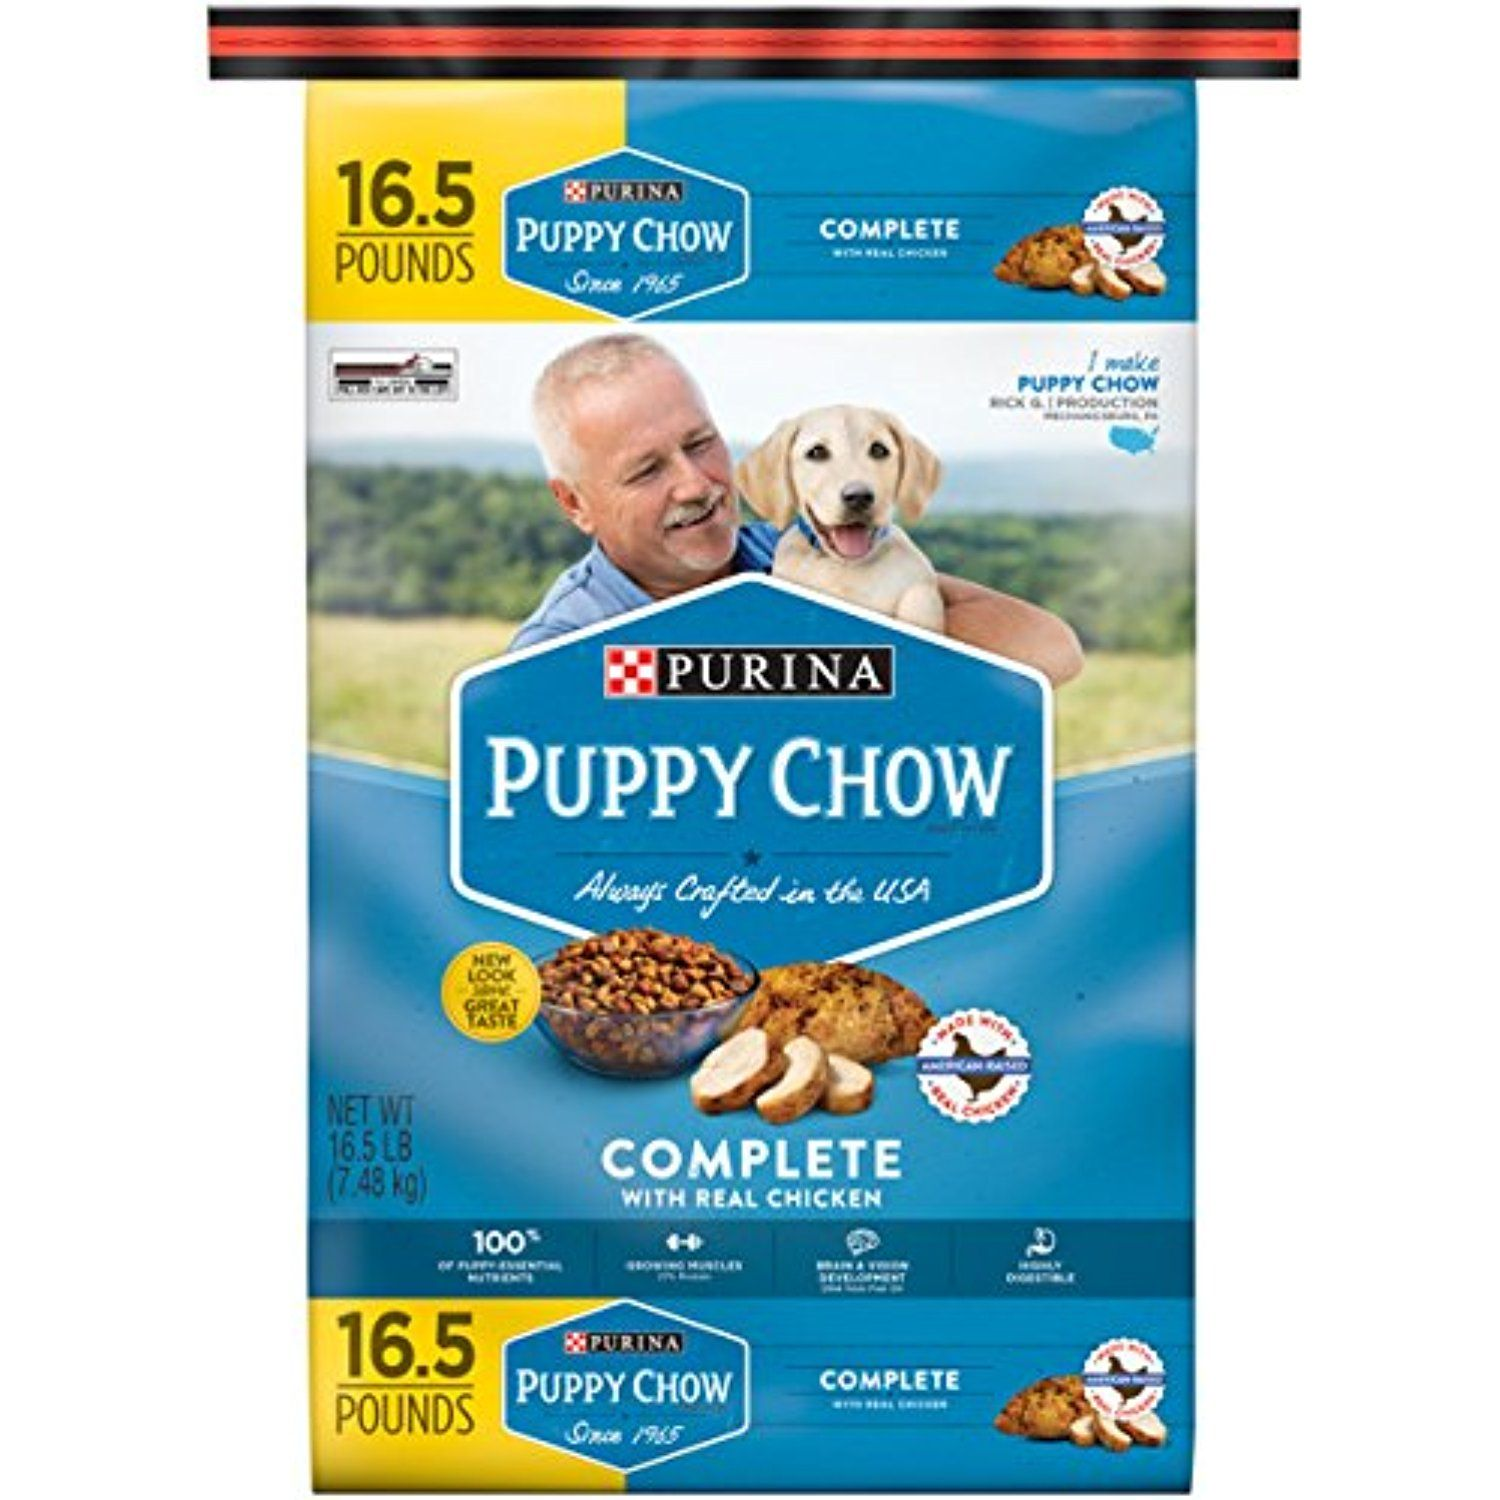 Purina Puppy Chow Complete Dry Dog Food 1 16 5 Lb Bag The